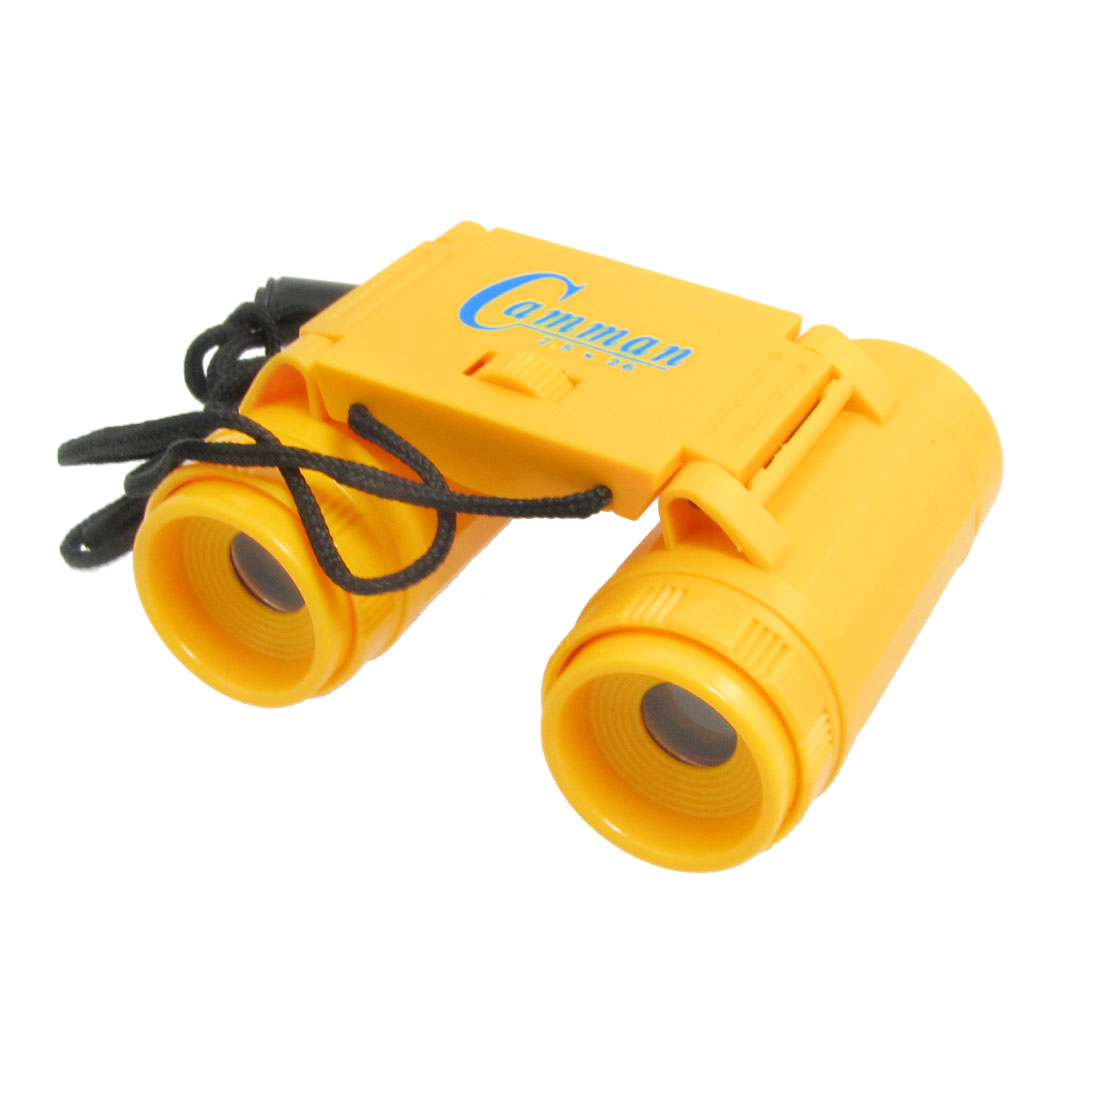 Child Portable Yellow Plastic Binoculars Telescope w Neck Strap